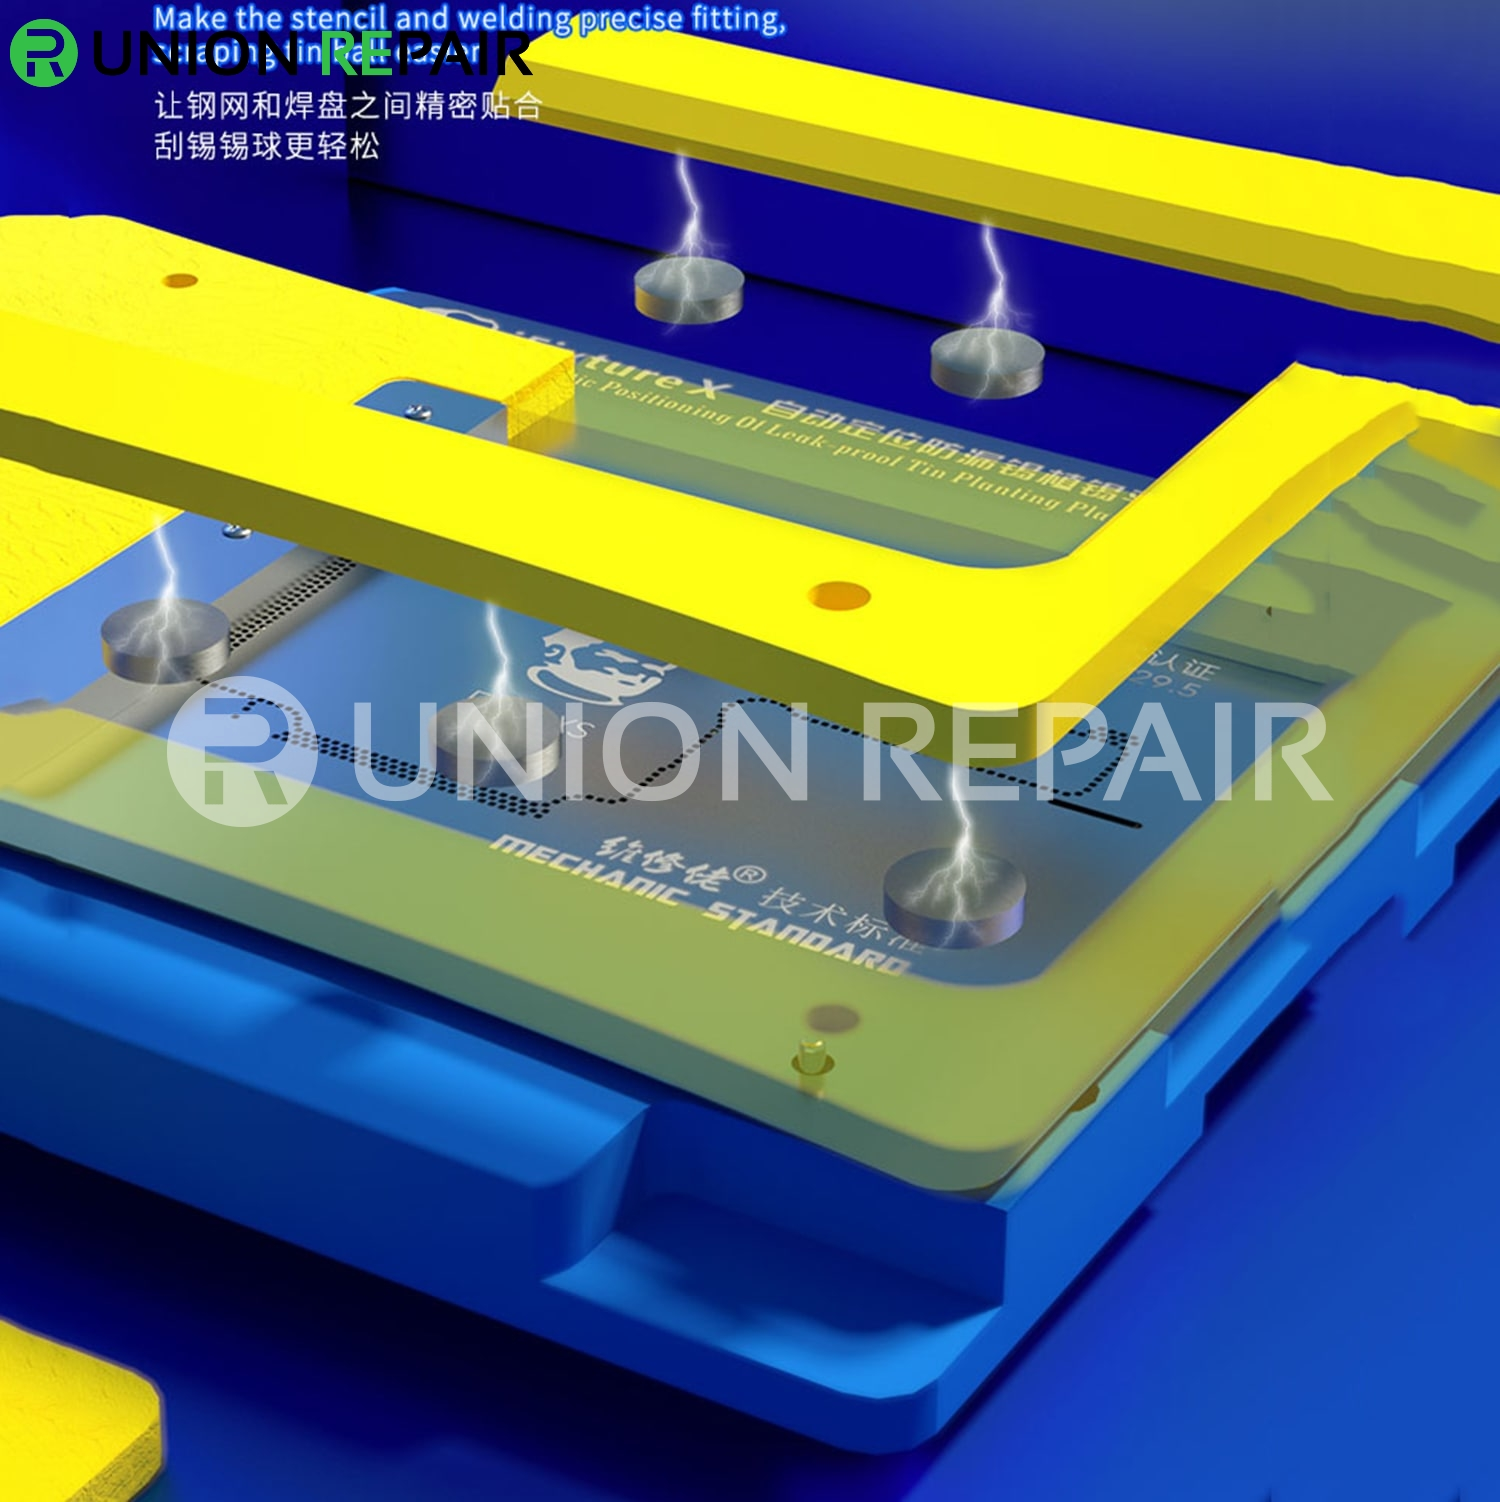 Mechanic iFixture X X11 5D BGA Automatic Positioning Platform for iPhone X/Xs/XsMax/11/11Pro/11ProMax